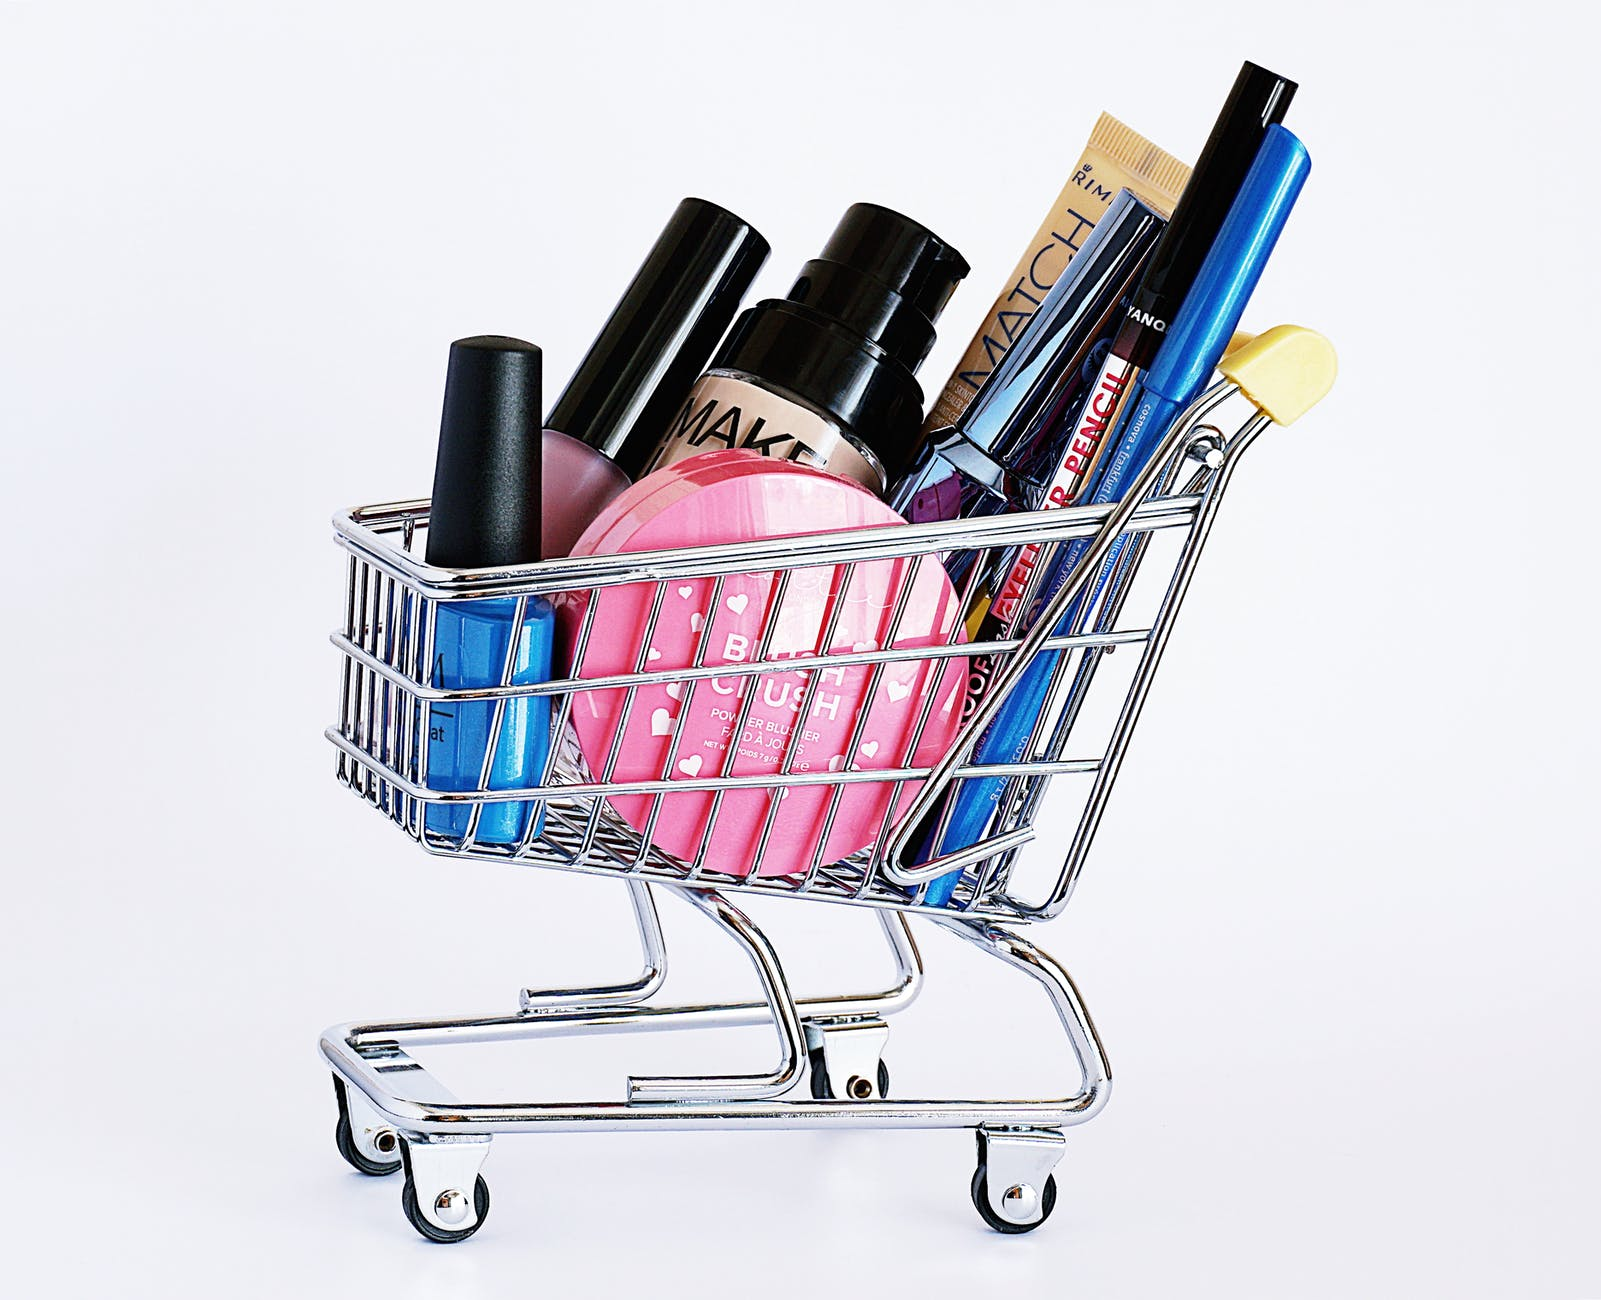 Assorted cosmetics in a cart